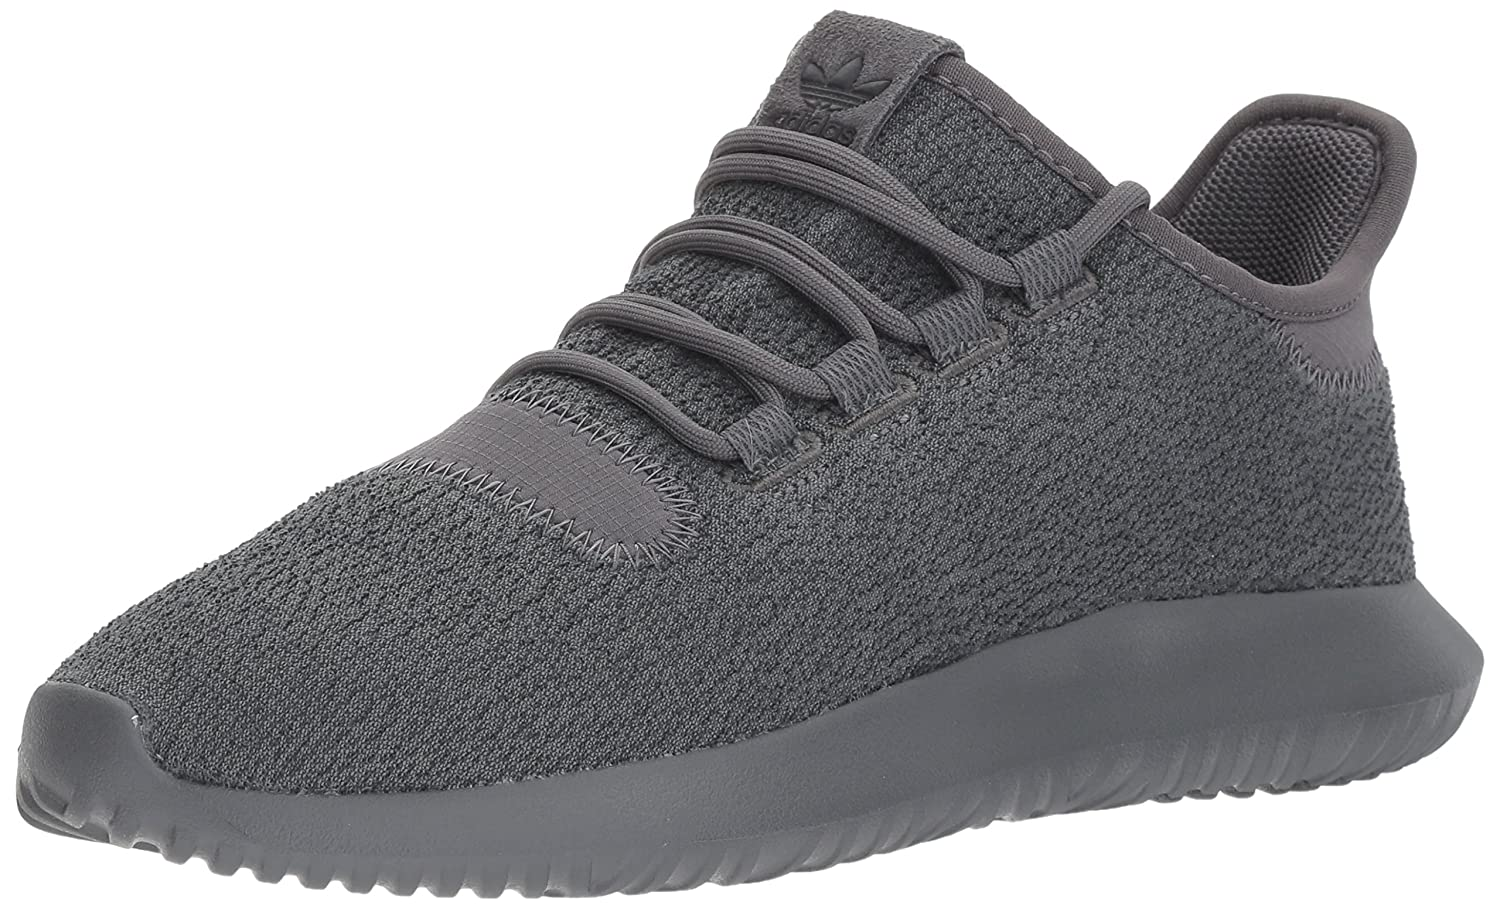 adidas Originals Women's Tubular Shadow W Fashion Sneaker B01NAJA7TW 10 B(M) US|Grey Five/Grey Five/Grey Five